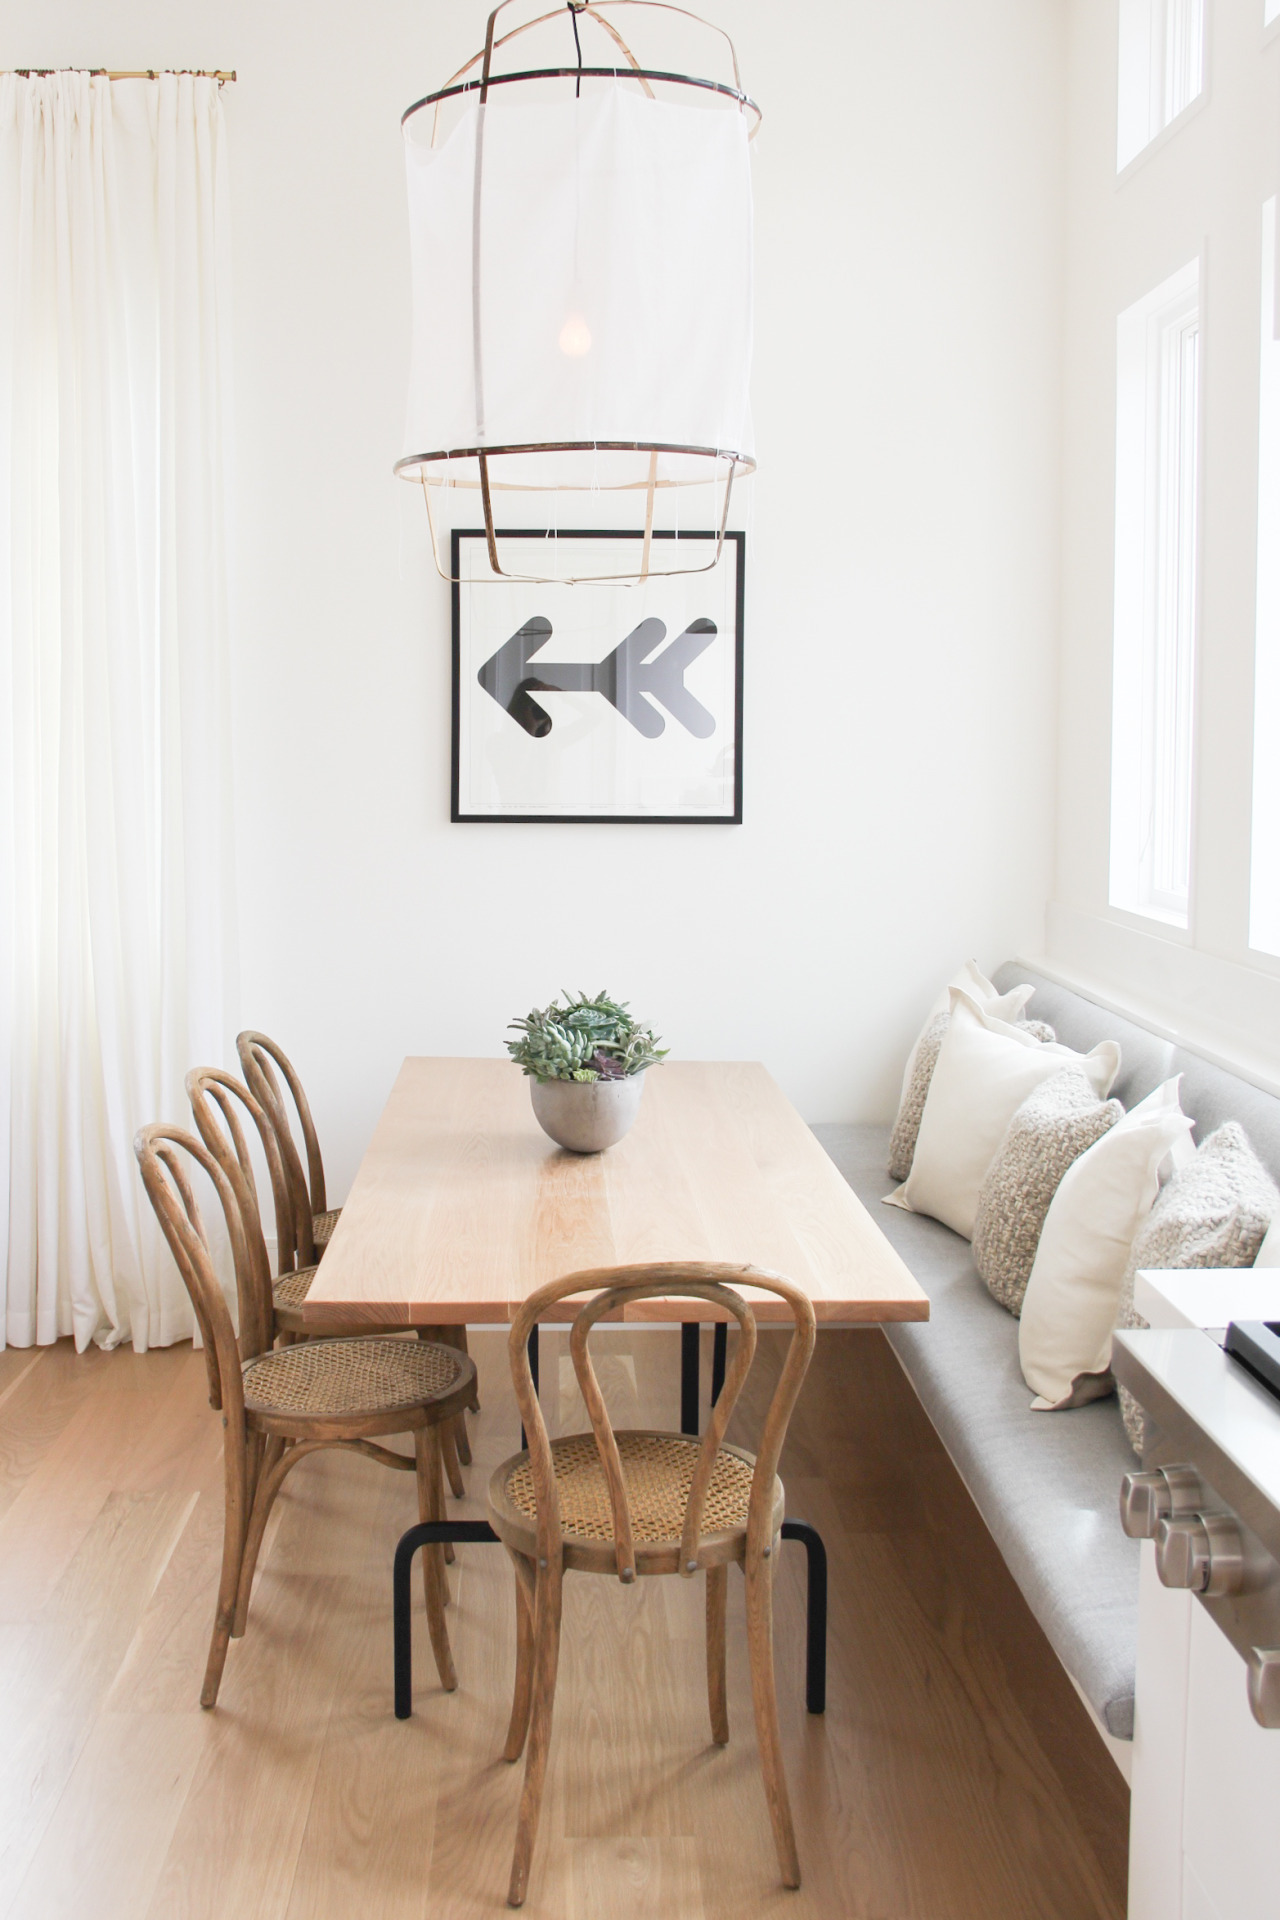 Neutral toned banquette in a minimalist setting